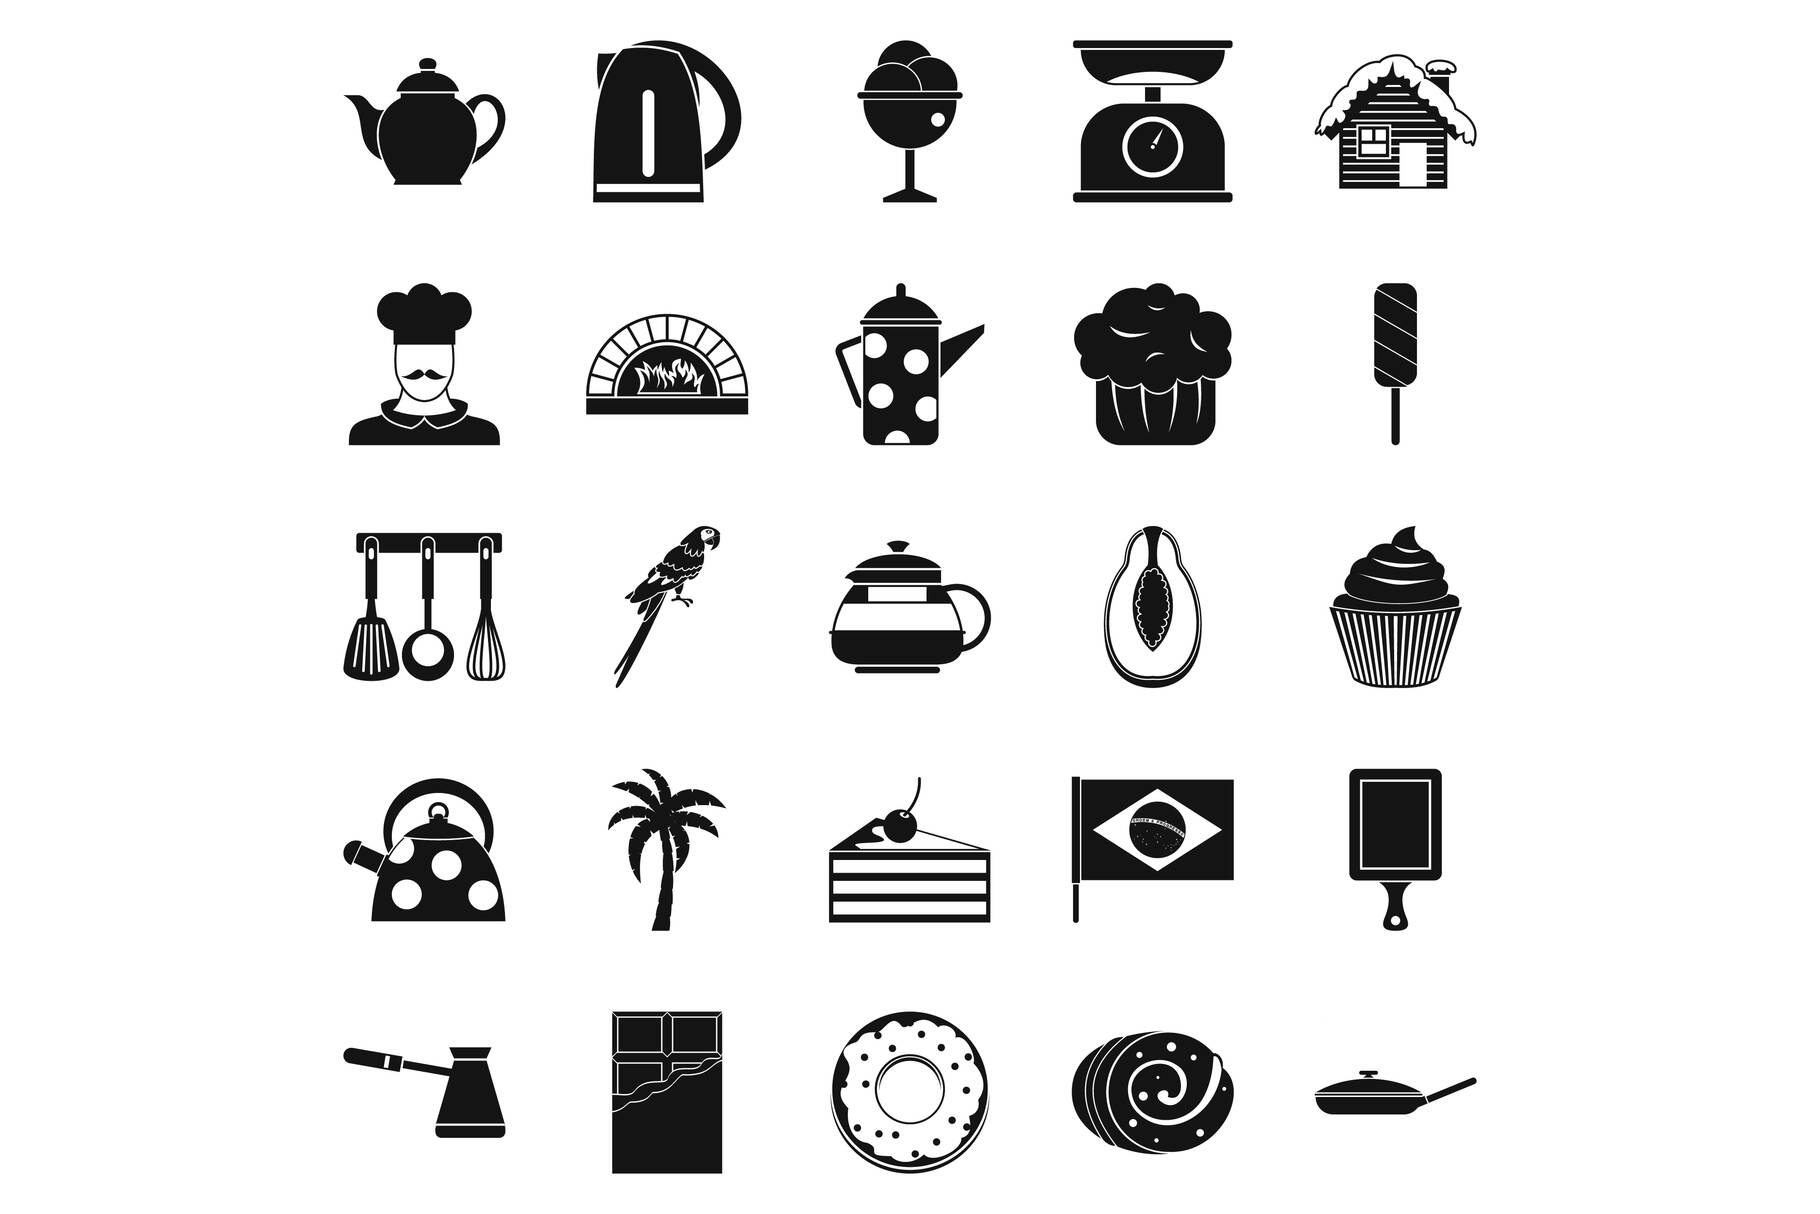 Tavern icons set, simple style example image 1